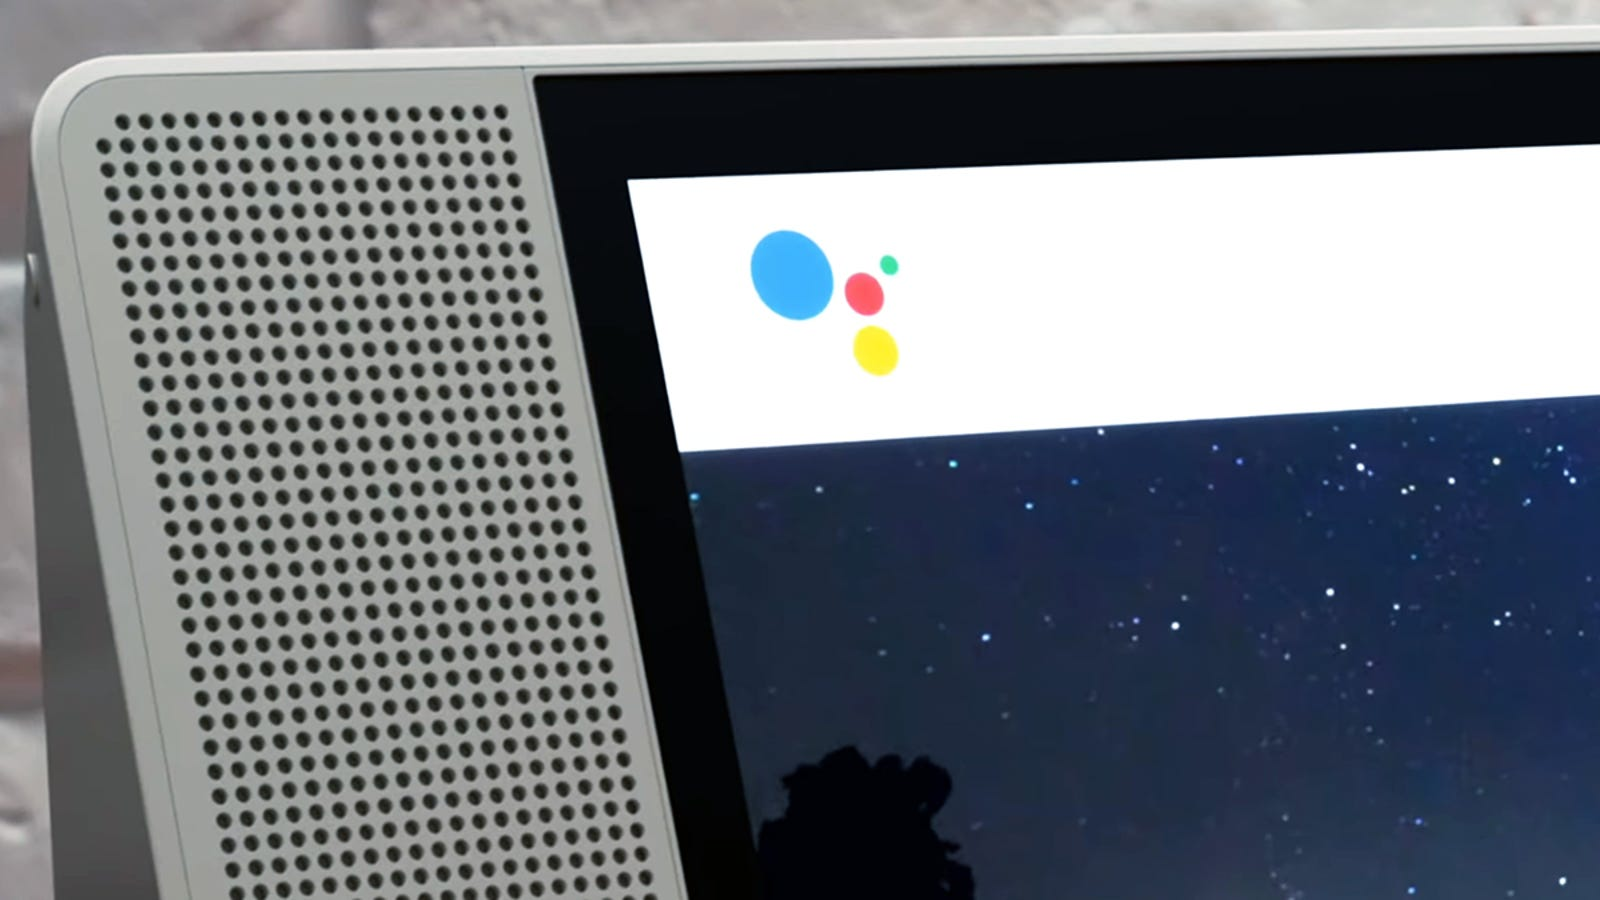 QnA VBage The Complete Guide to Google Assistant in 2018